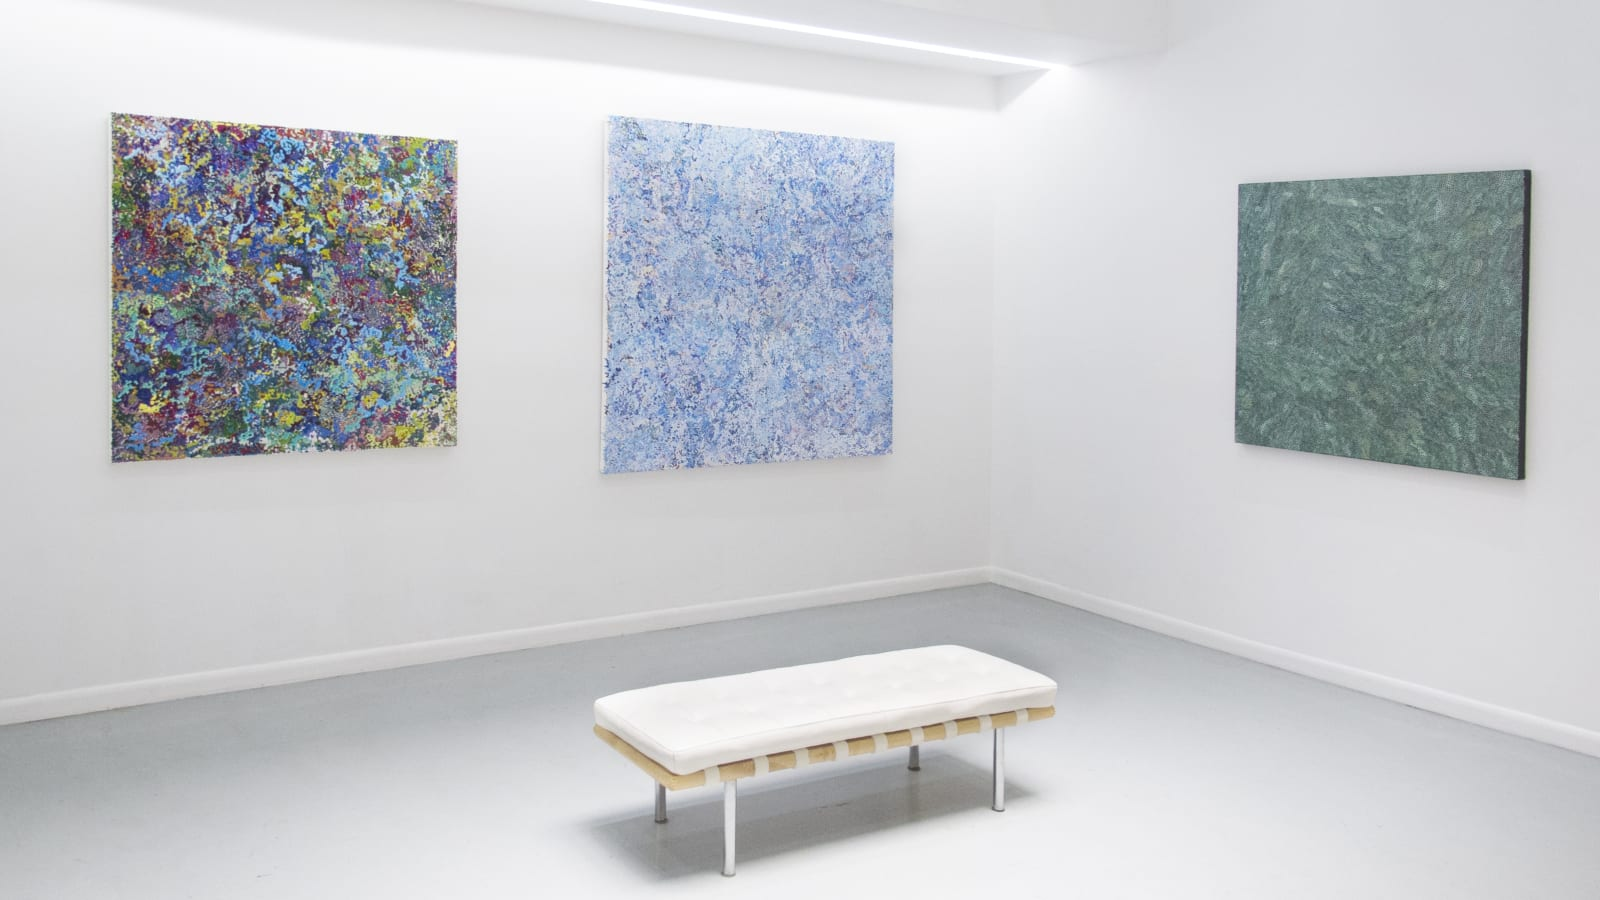 Elemental Abstractions - Gregory Hayes and Hyun Sook Jeong